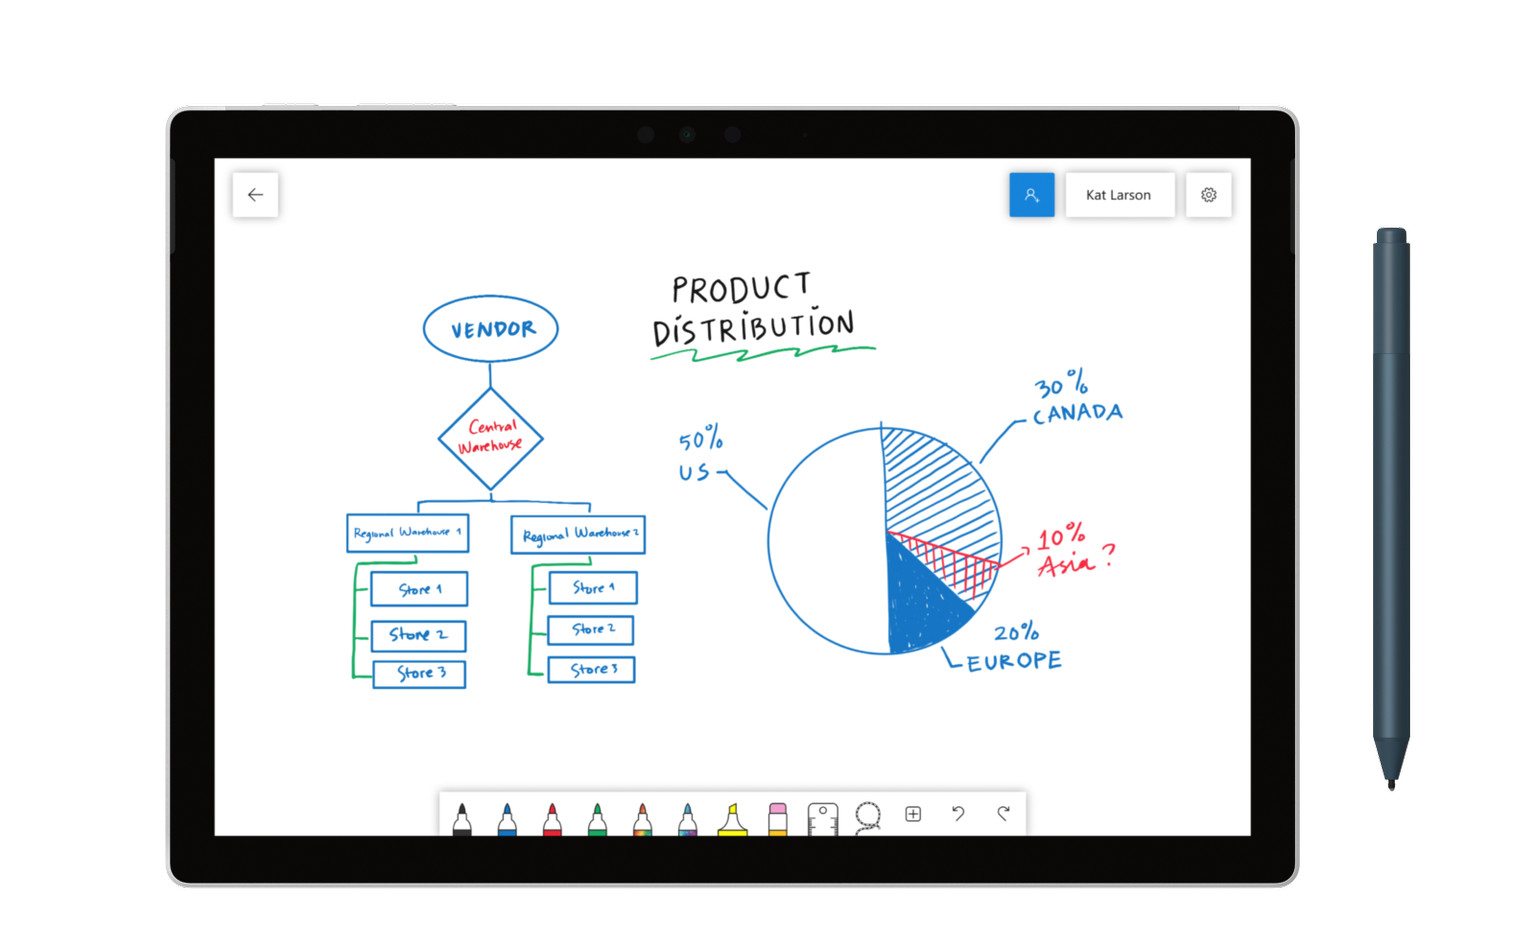 Microsoft's Whiteboard collaboration app debuts for Windows 10, coming to iOS